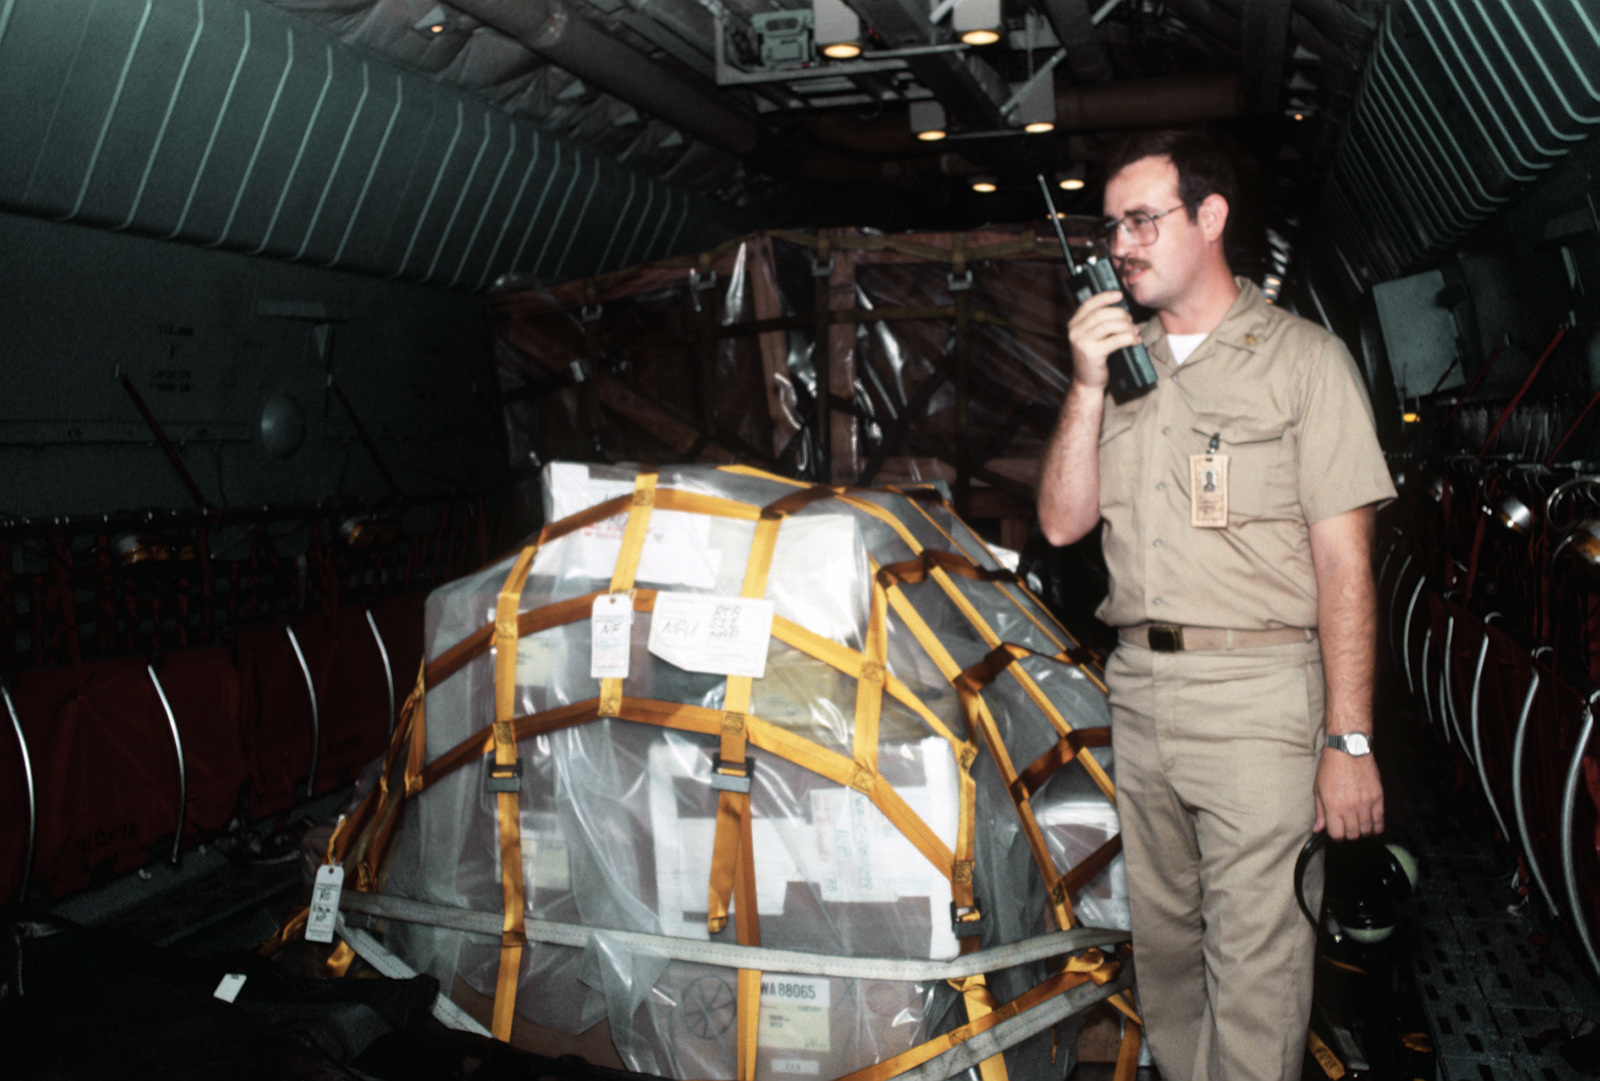 CHIEF Cryptologic Technician (CTC) Arnold D. Collins radios a message from the cargo bay of a C-141B Starlifter aircraft that the Armed Forces Courier Station shipment has arrived